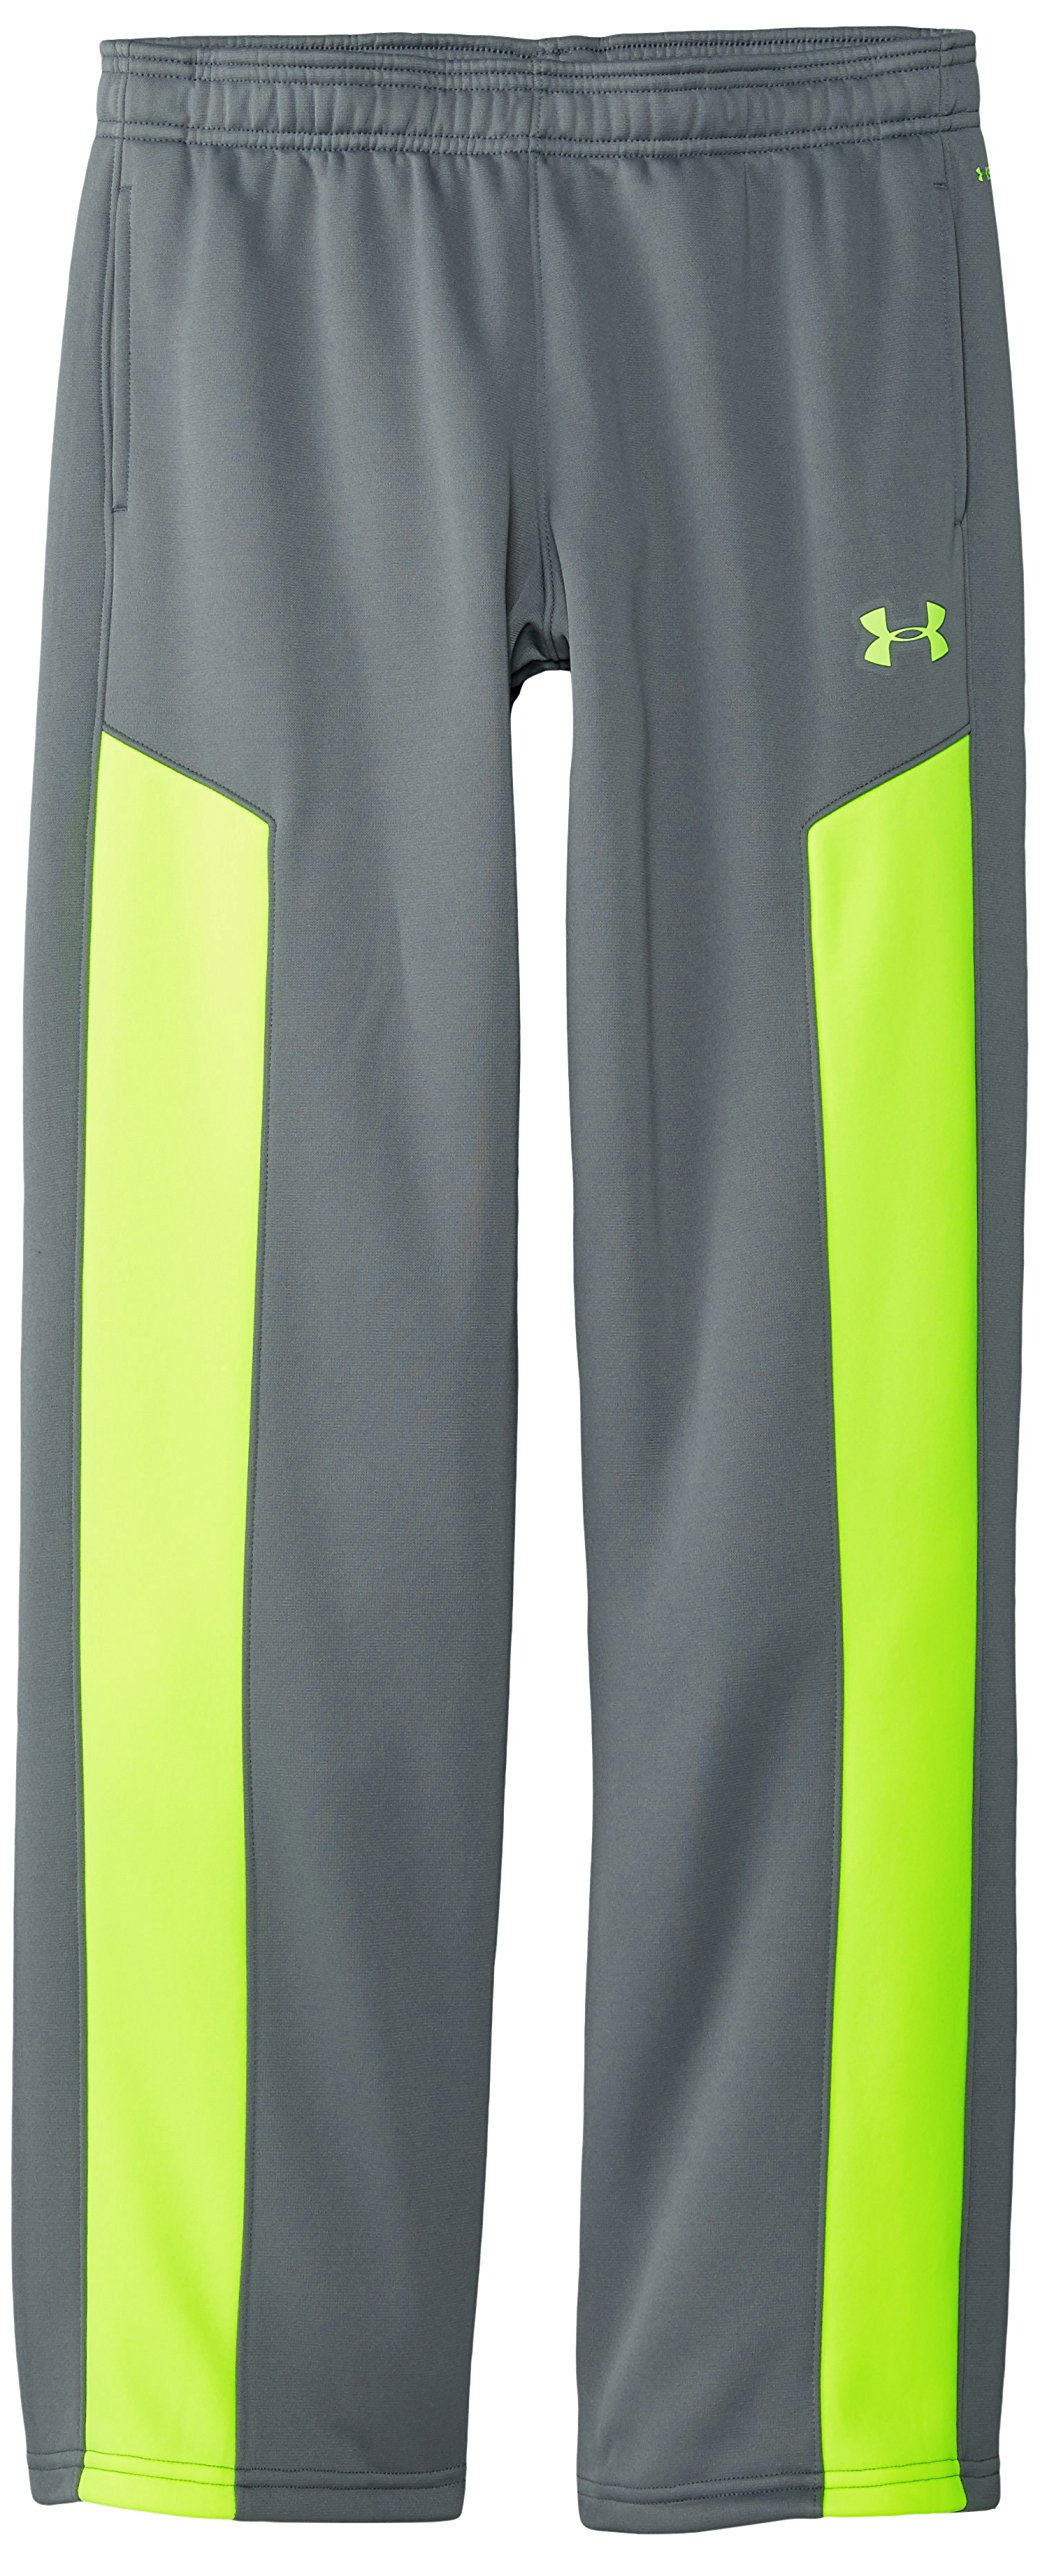 Under Armour Youth Boys' Fleece Storm Pant, Graphite /High-Vis Yellow, Youth Small